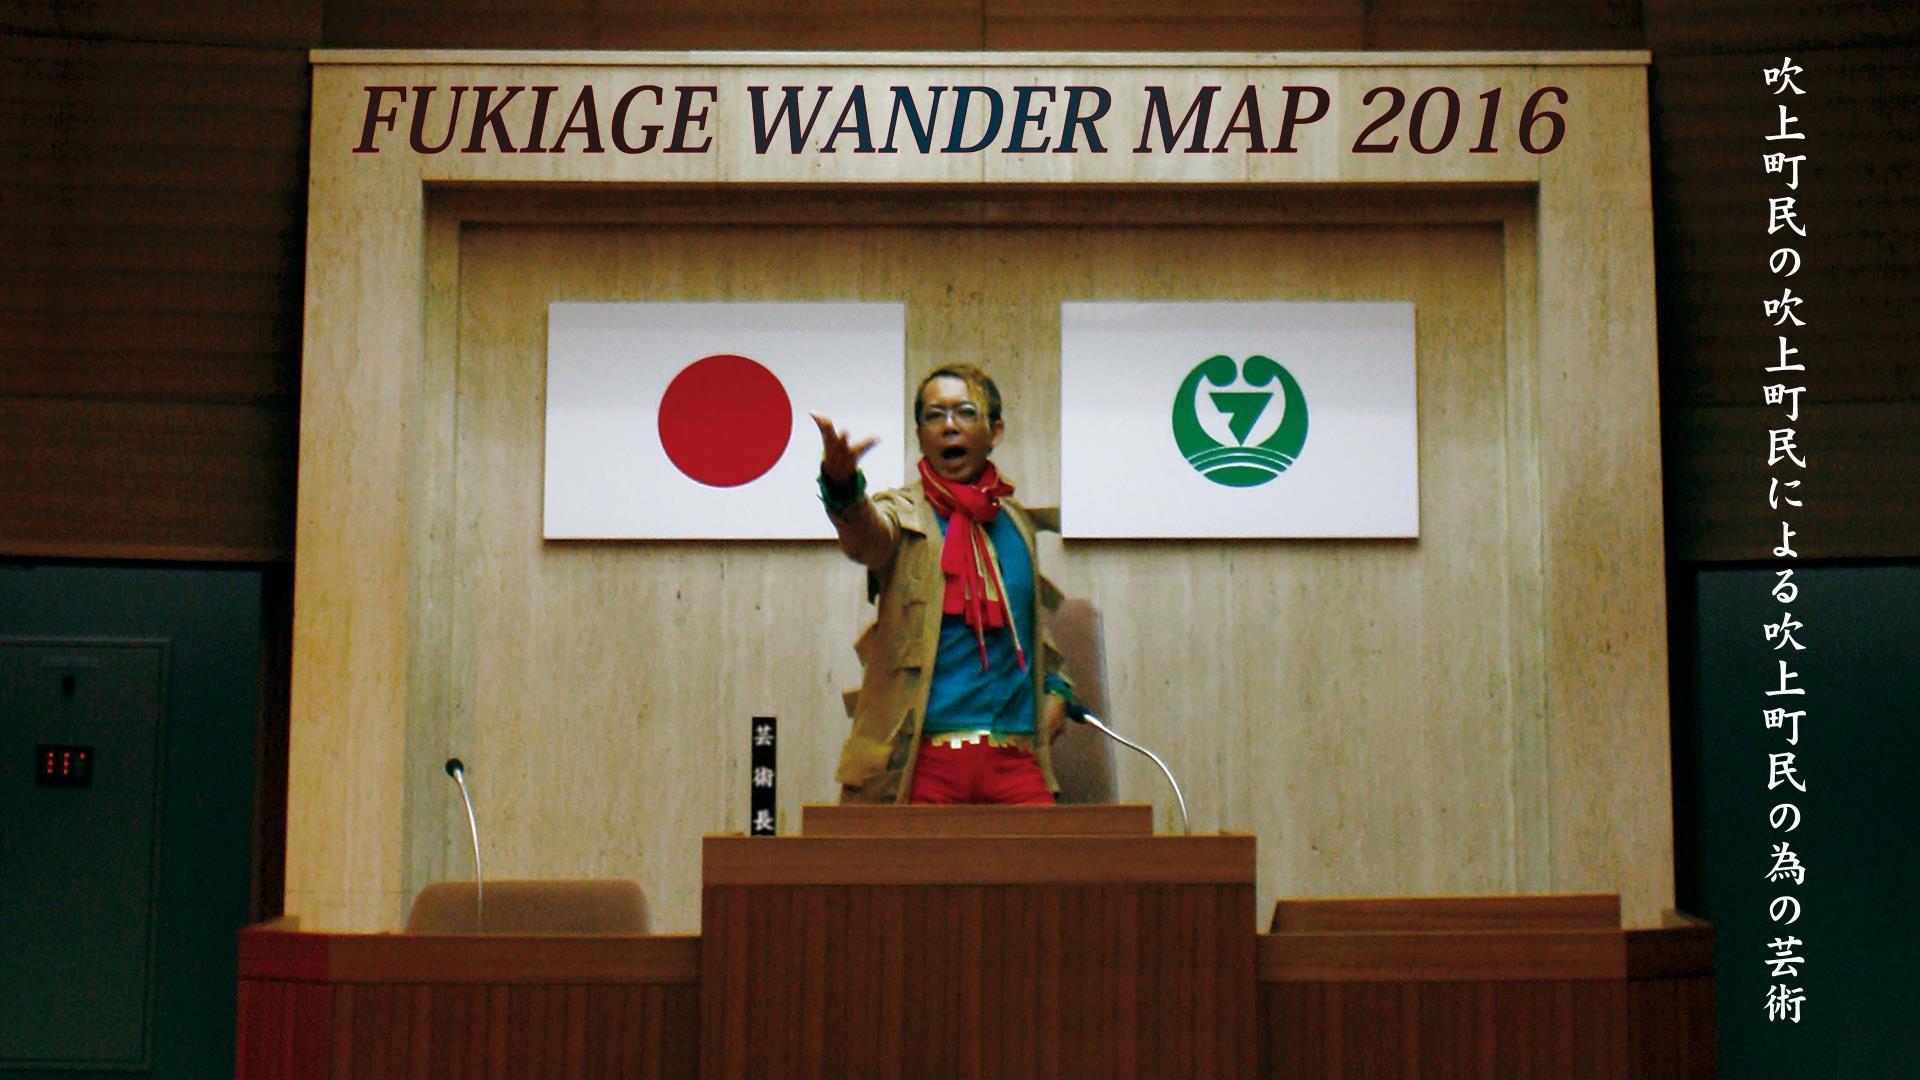 FUKIAGE WANDER MAP 2016